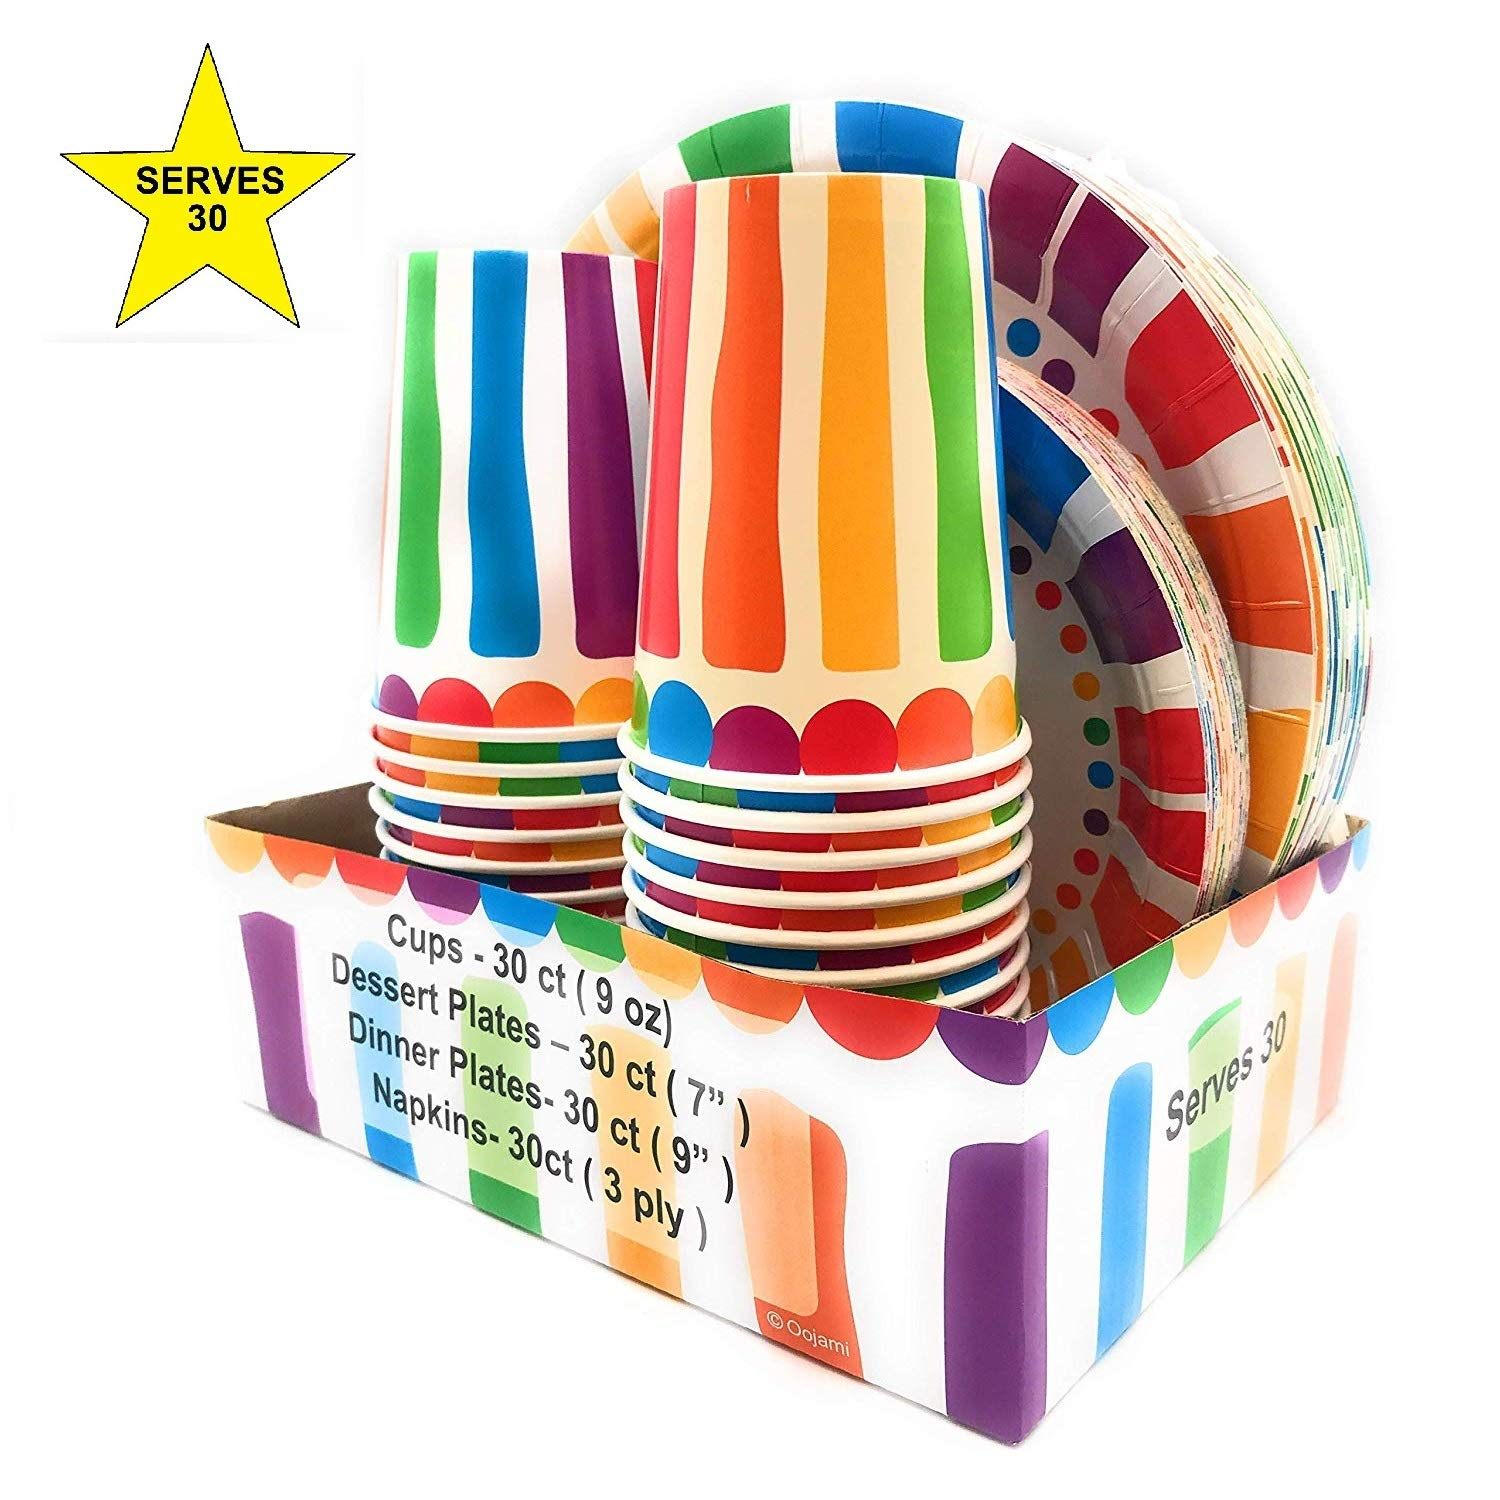 Serves 30 Rainbow Party Pack | 30 cups 9 oz | 30 Dessert Plates 7'' | 30 Dinner Plates 9'' | 30 Napkins | Serves 30 by Oojami